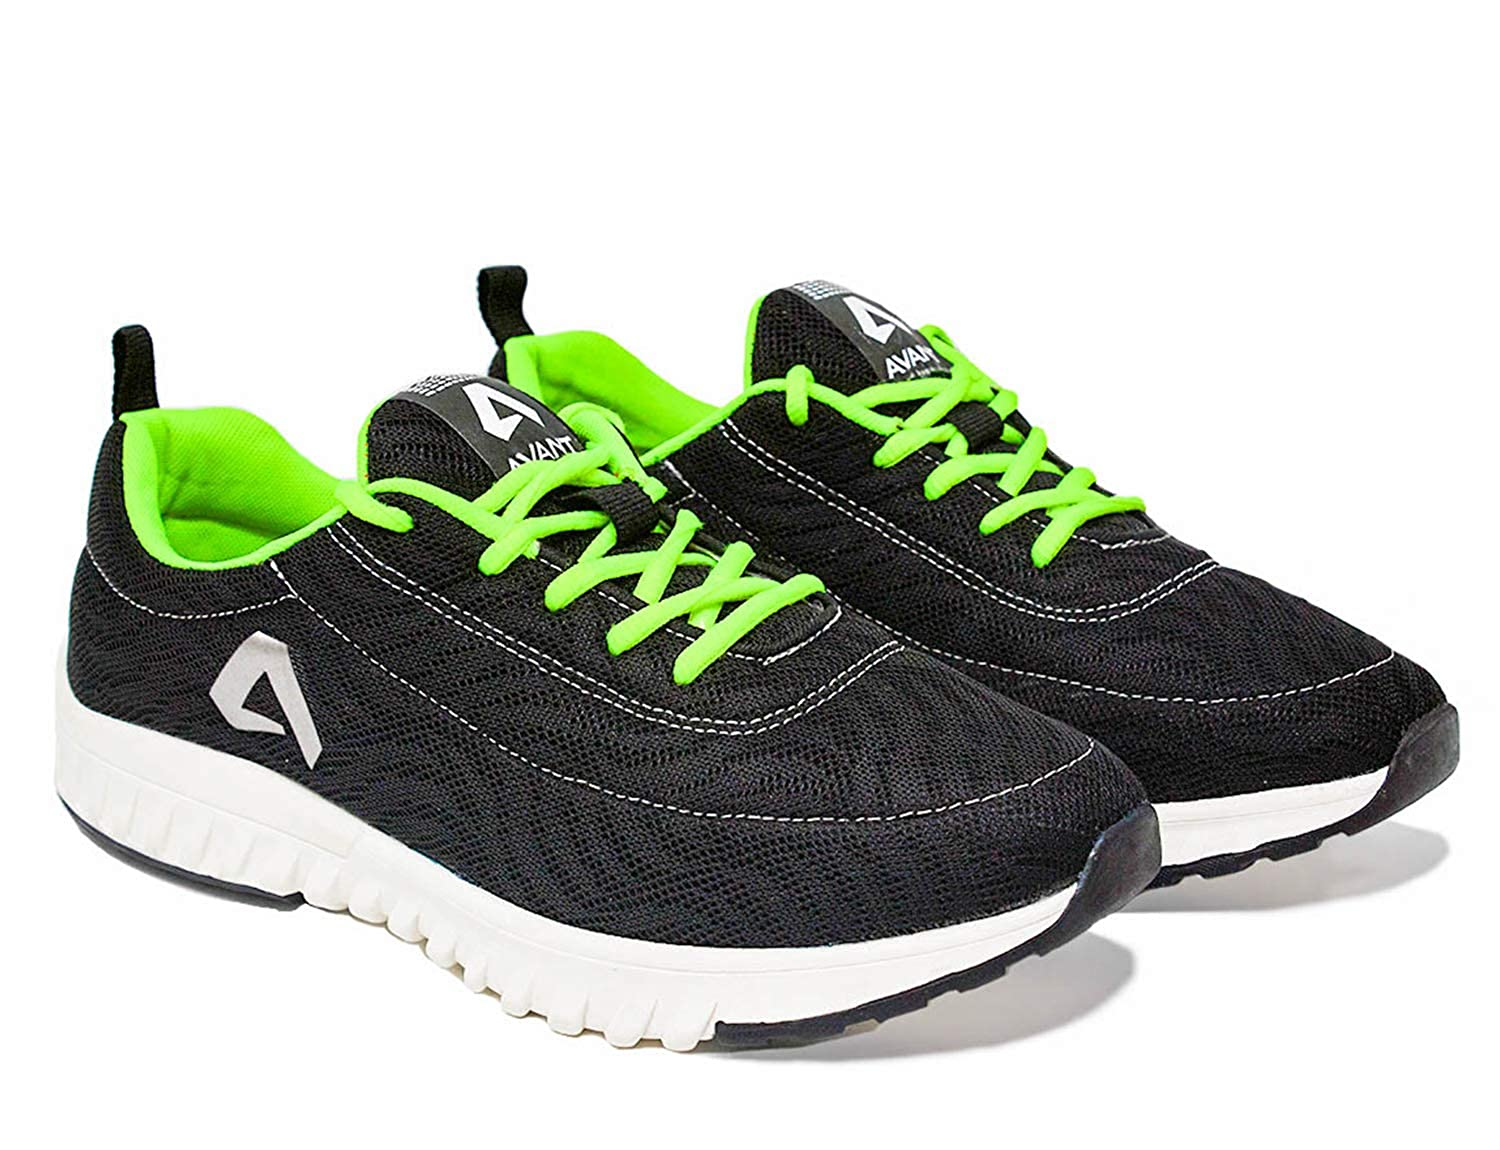 Rogue Running and Training Shoes